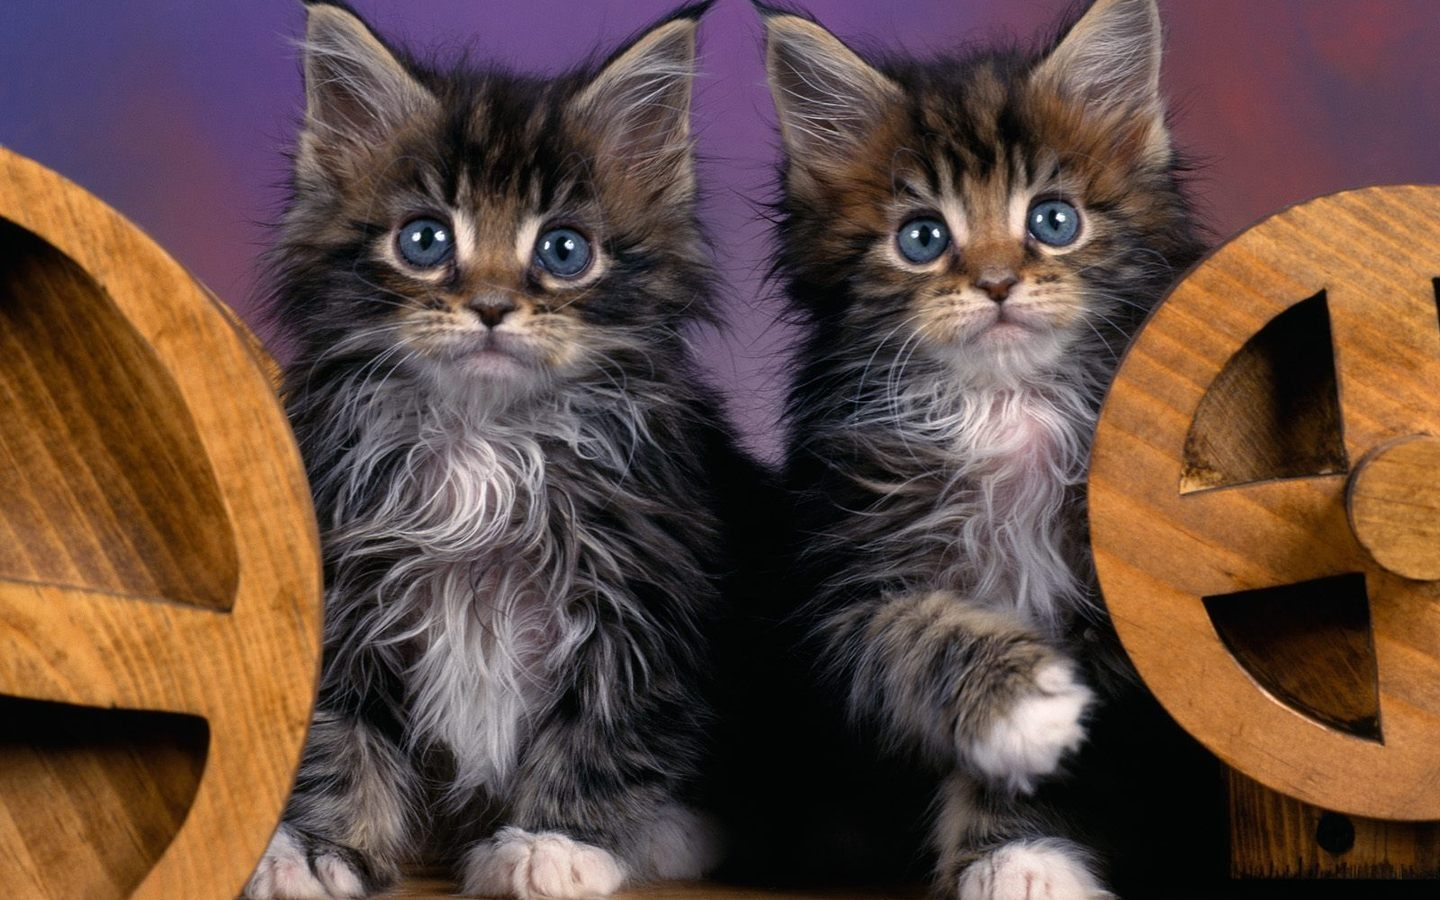 Maine Coon Kittens for 1440 x 900 widescreen resolution